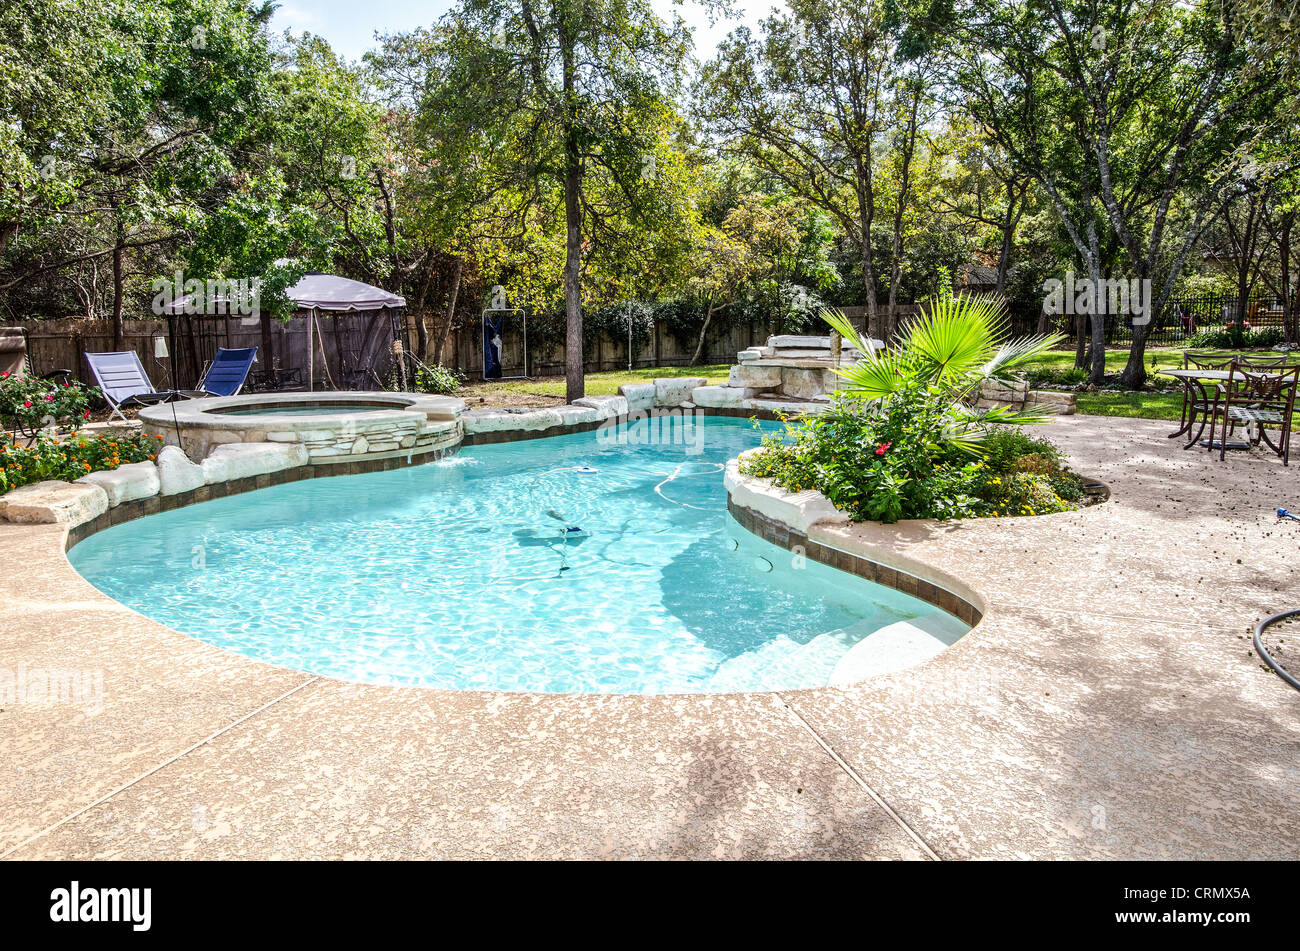 kidney shaped swimming pool and tub in landscaped backyard